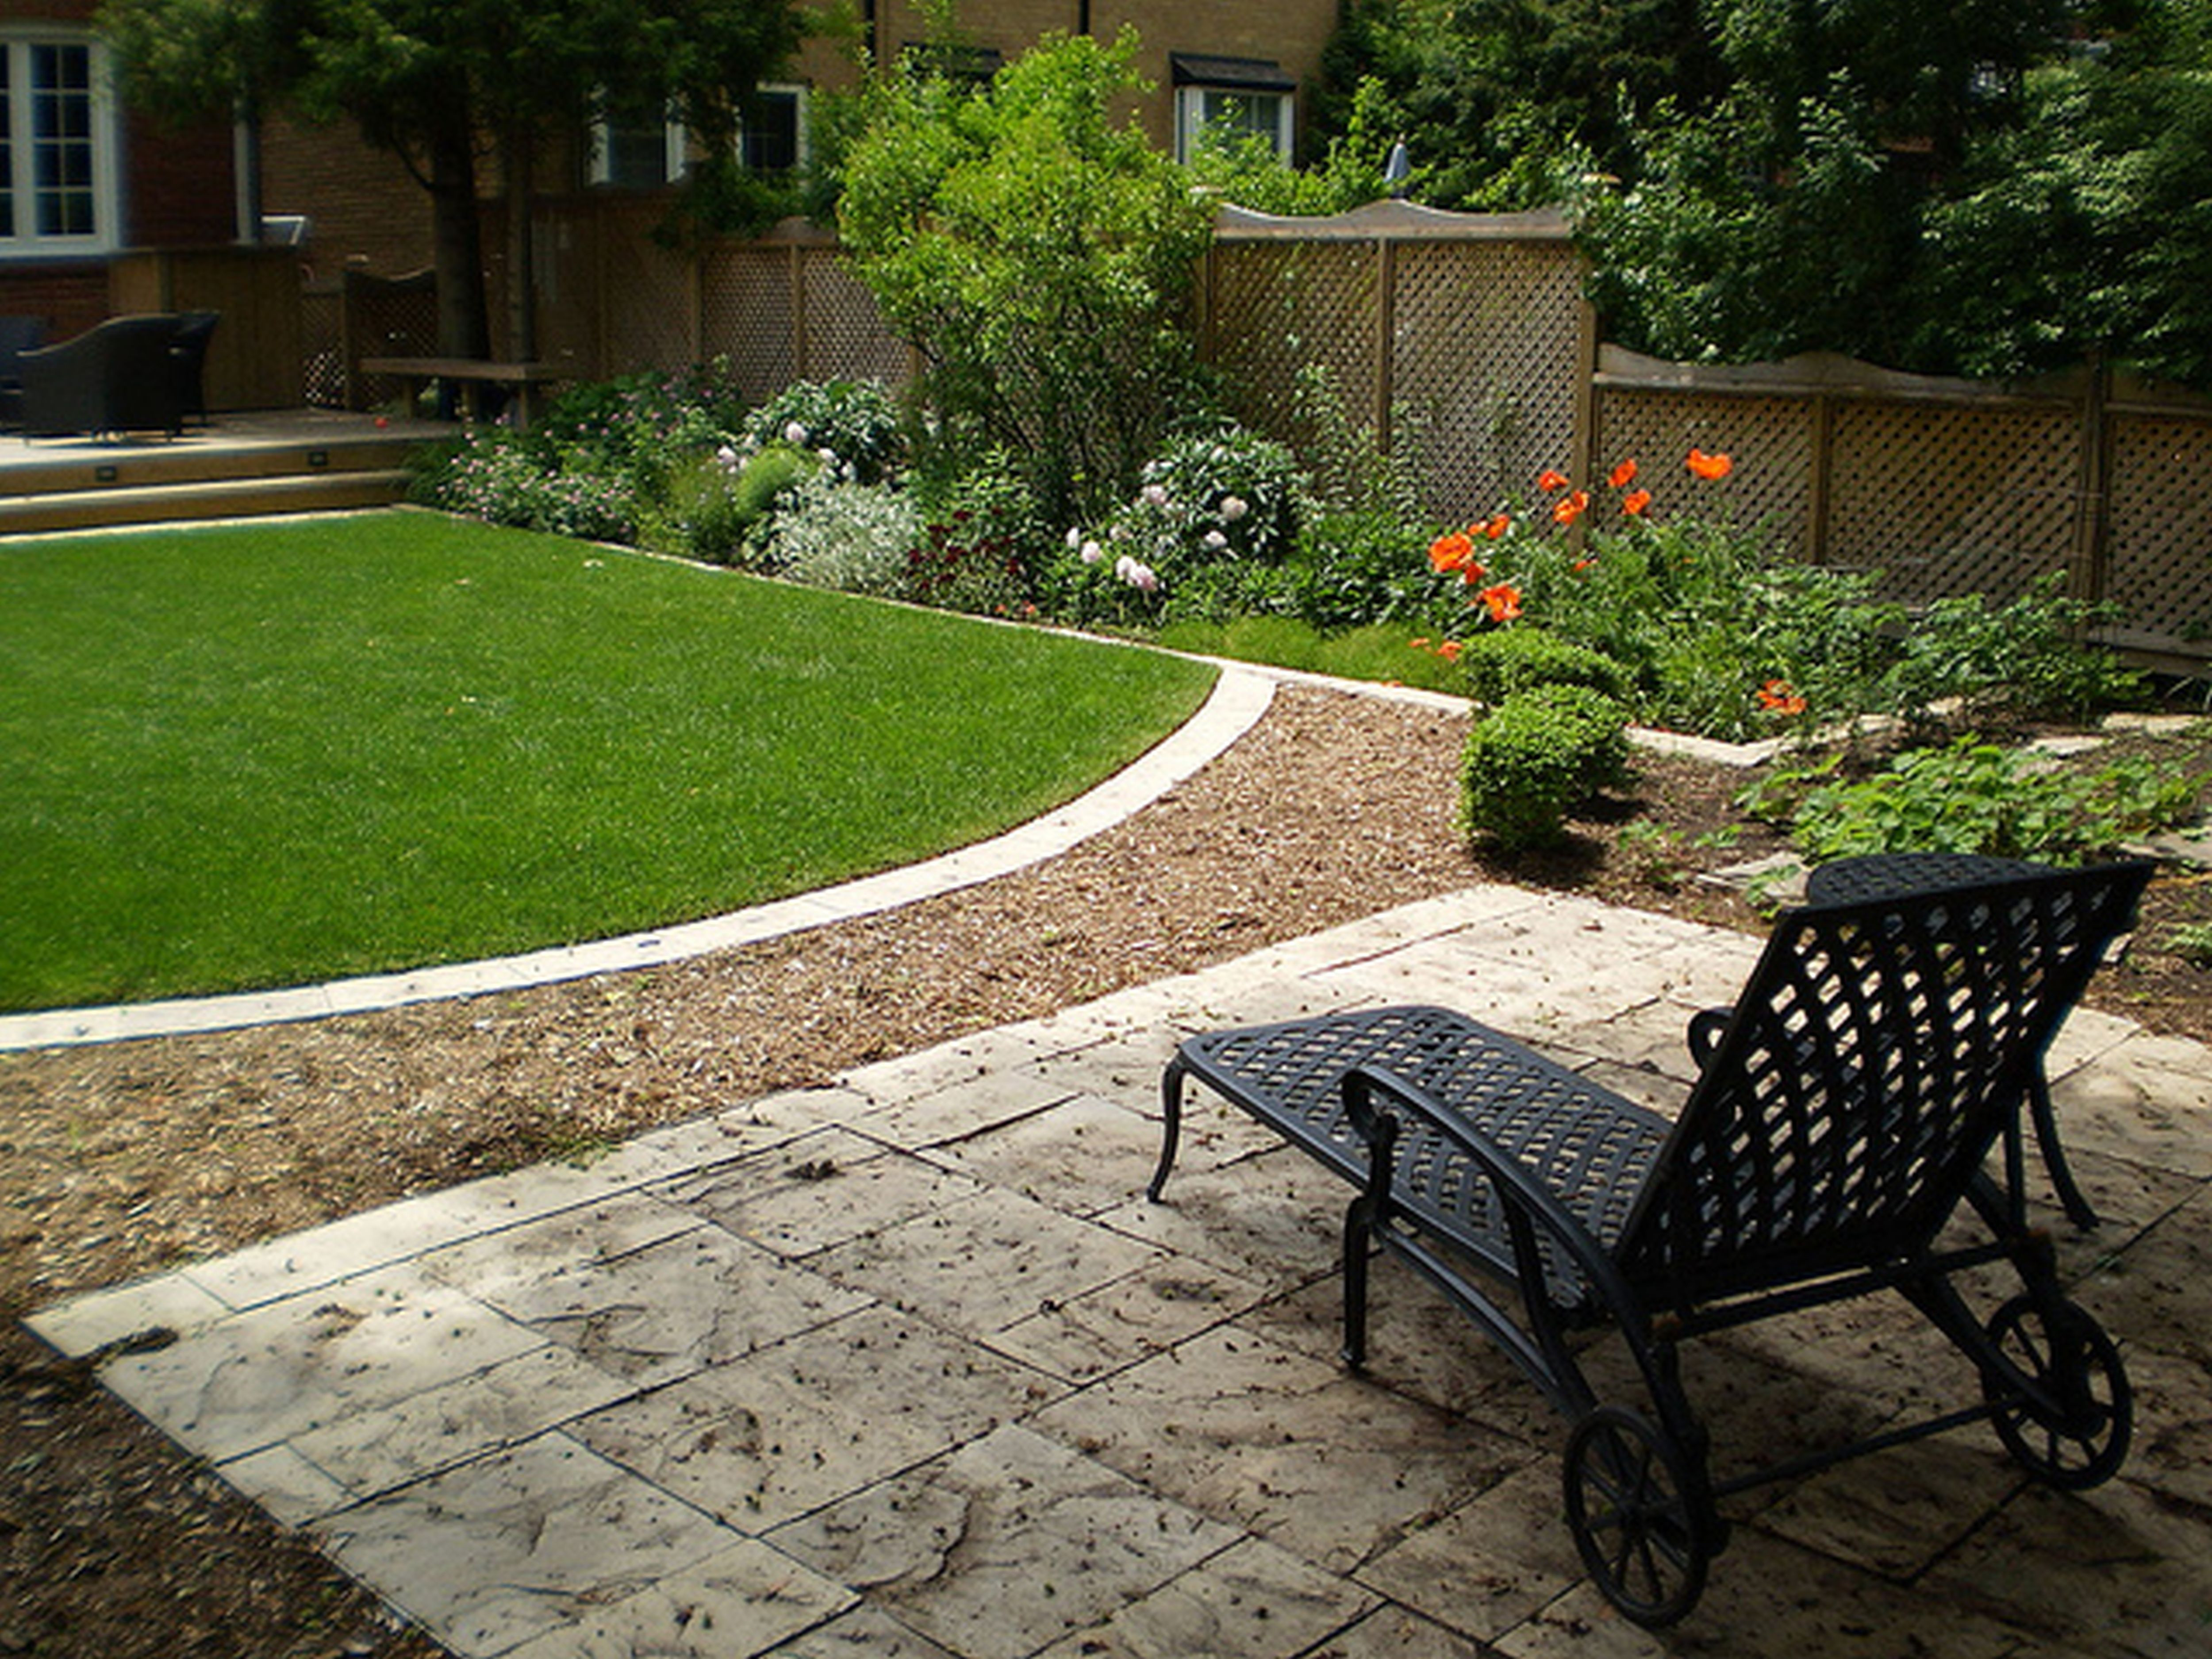 Best ideas about Backyard Landscape Ideas . Save or Pin Small Backyard Landscaping Tips You Have to Know Traba Homes Now.